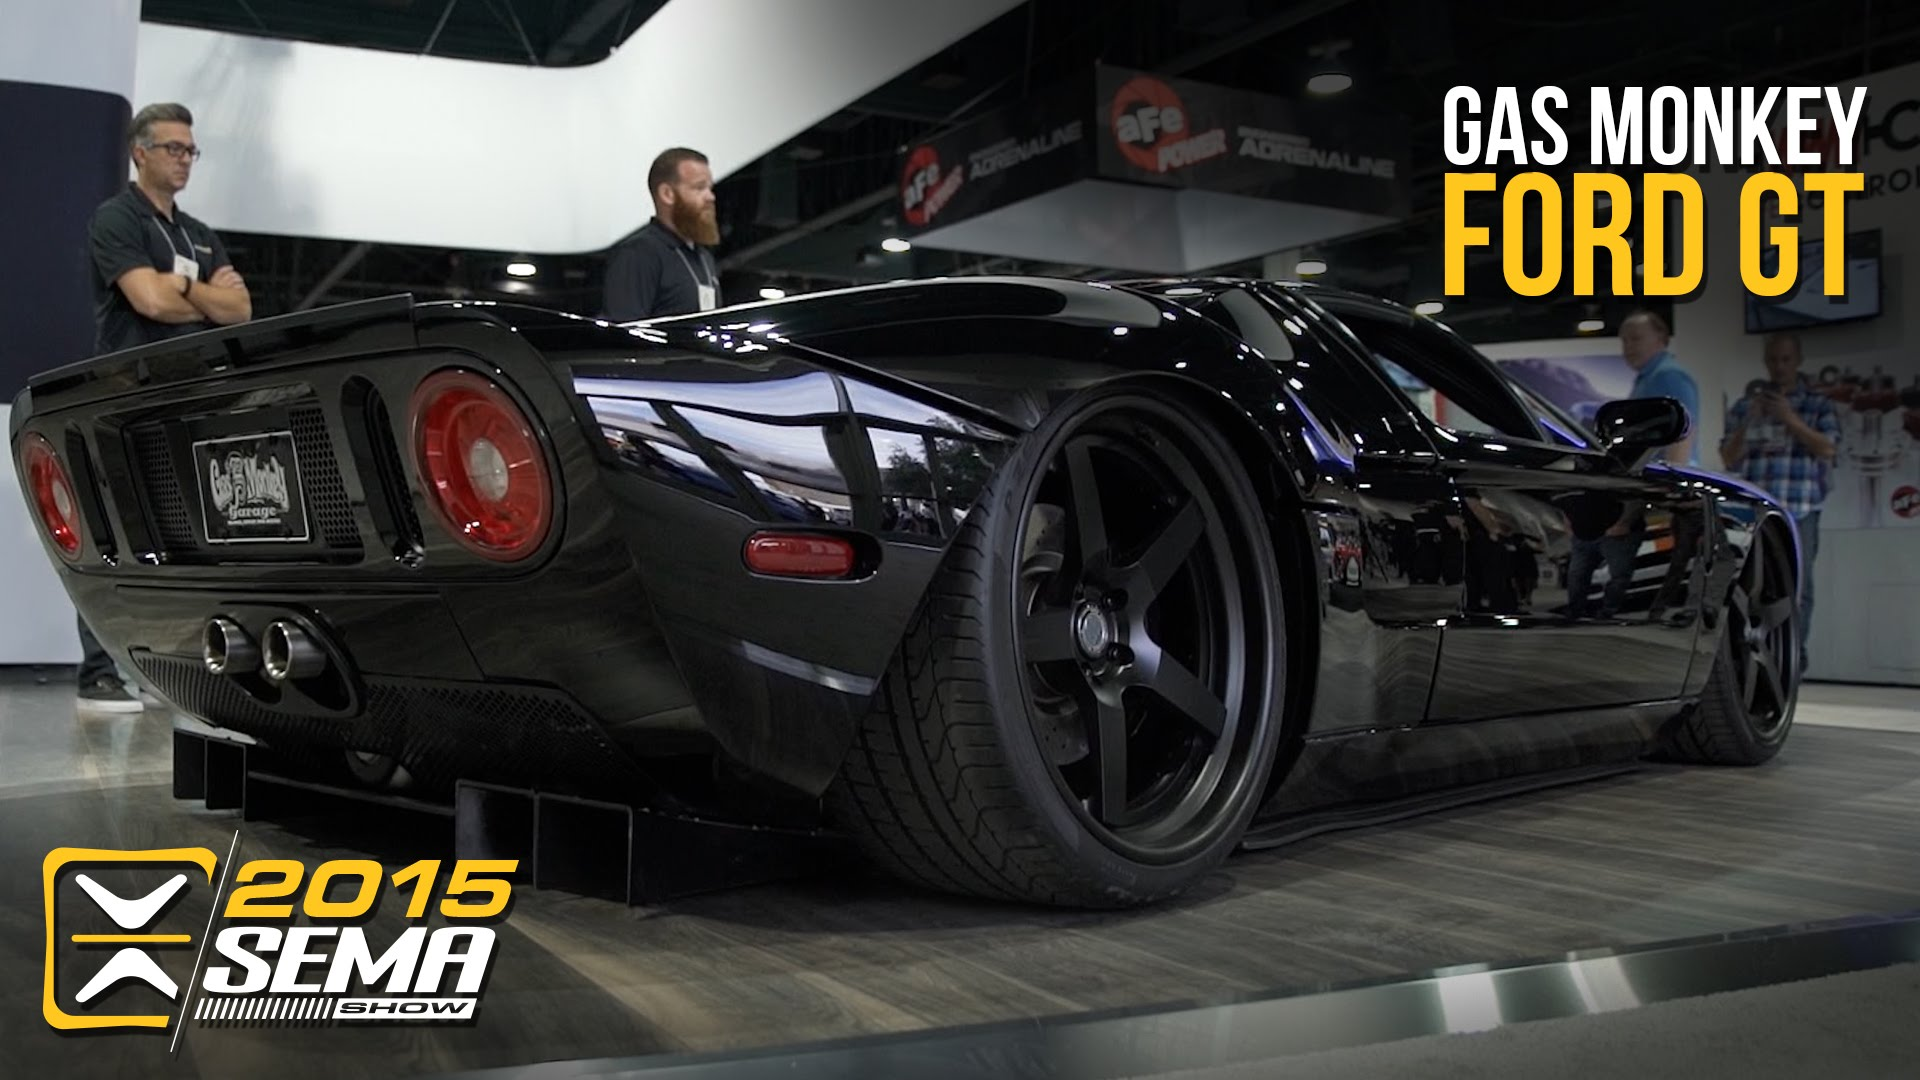 Gas Monkey Garage Turned Heads At Sema  With Their Gorgeous Fully Customized Ford Gt With Air Suspension